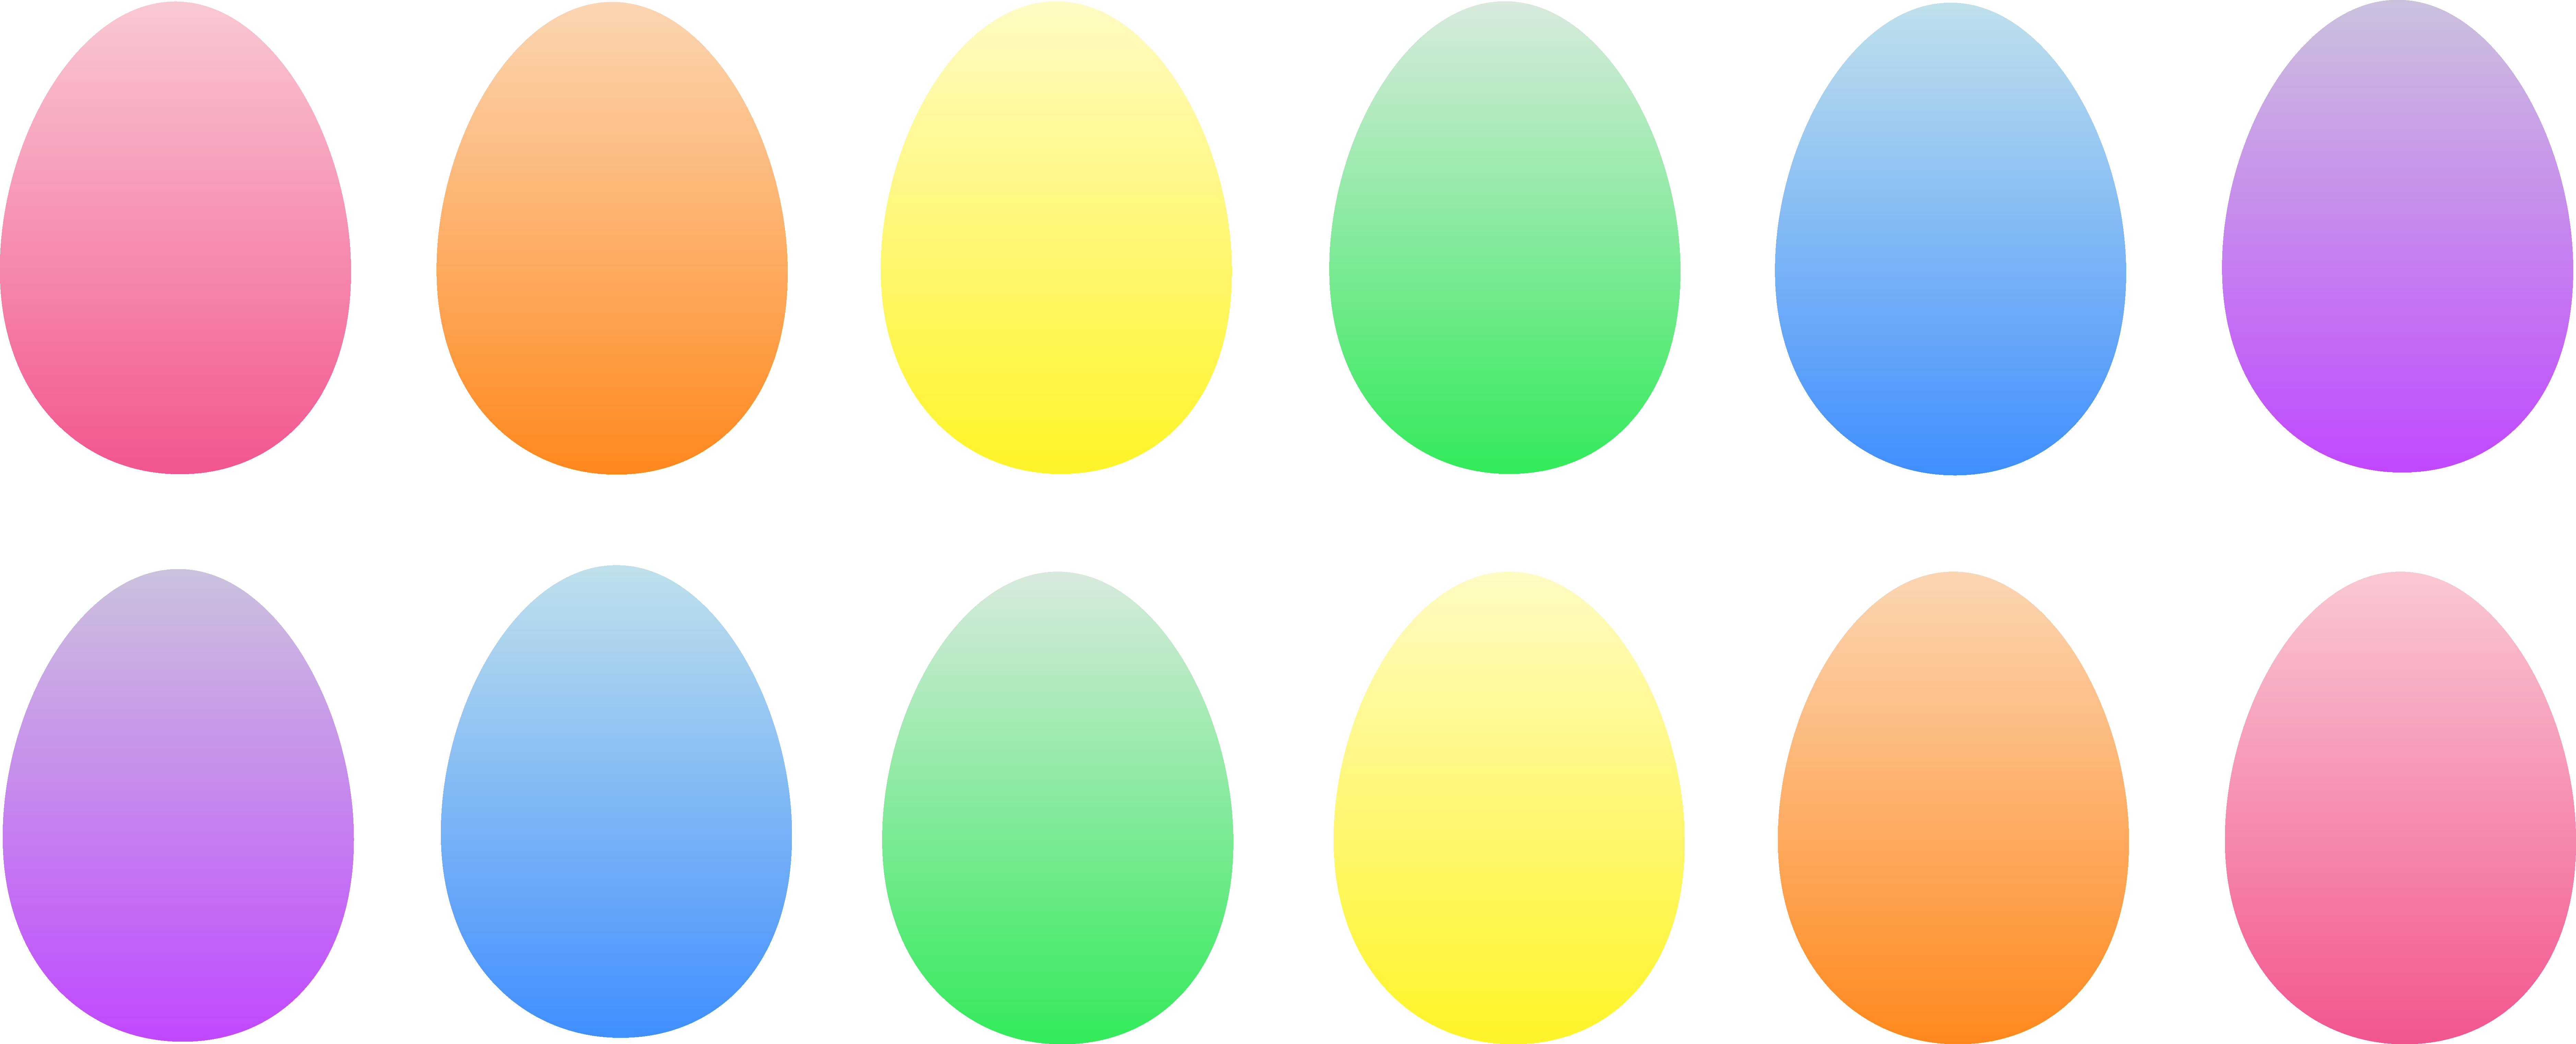 7508x3043 Easter Egg Border Clipart Free Images 4